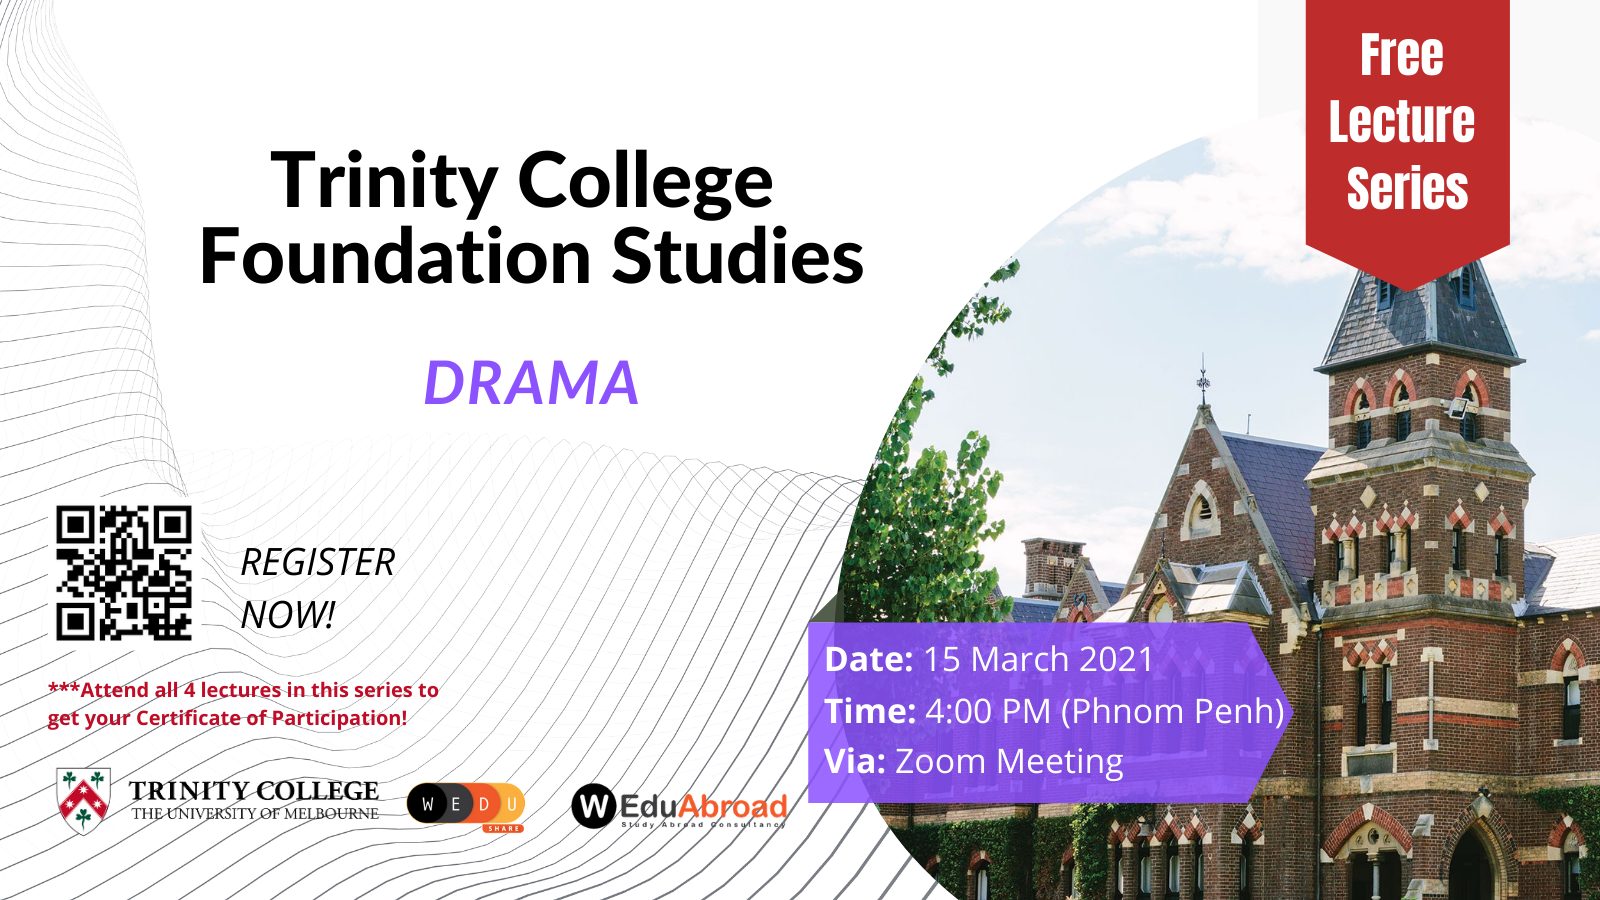 Trinity College Foundation Studies FREE Lecture Series Drama